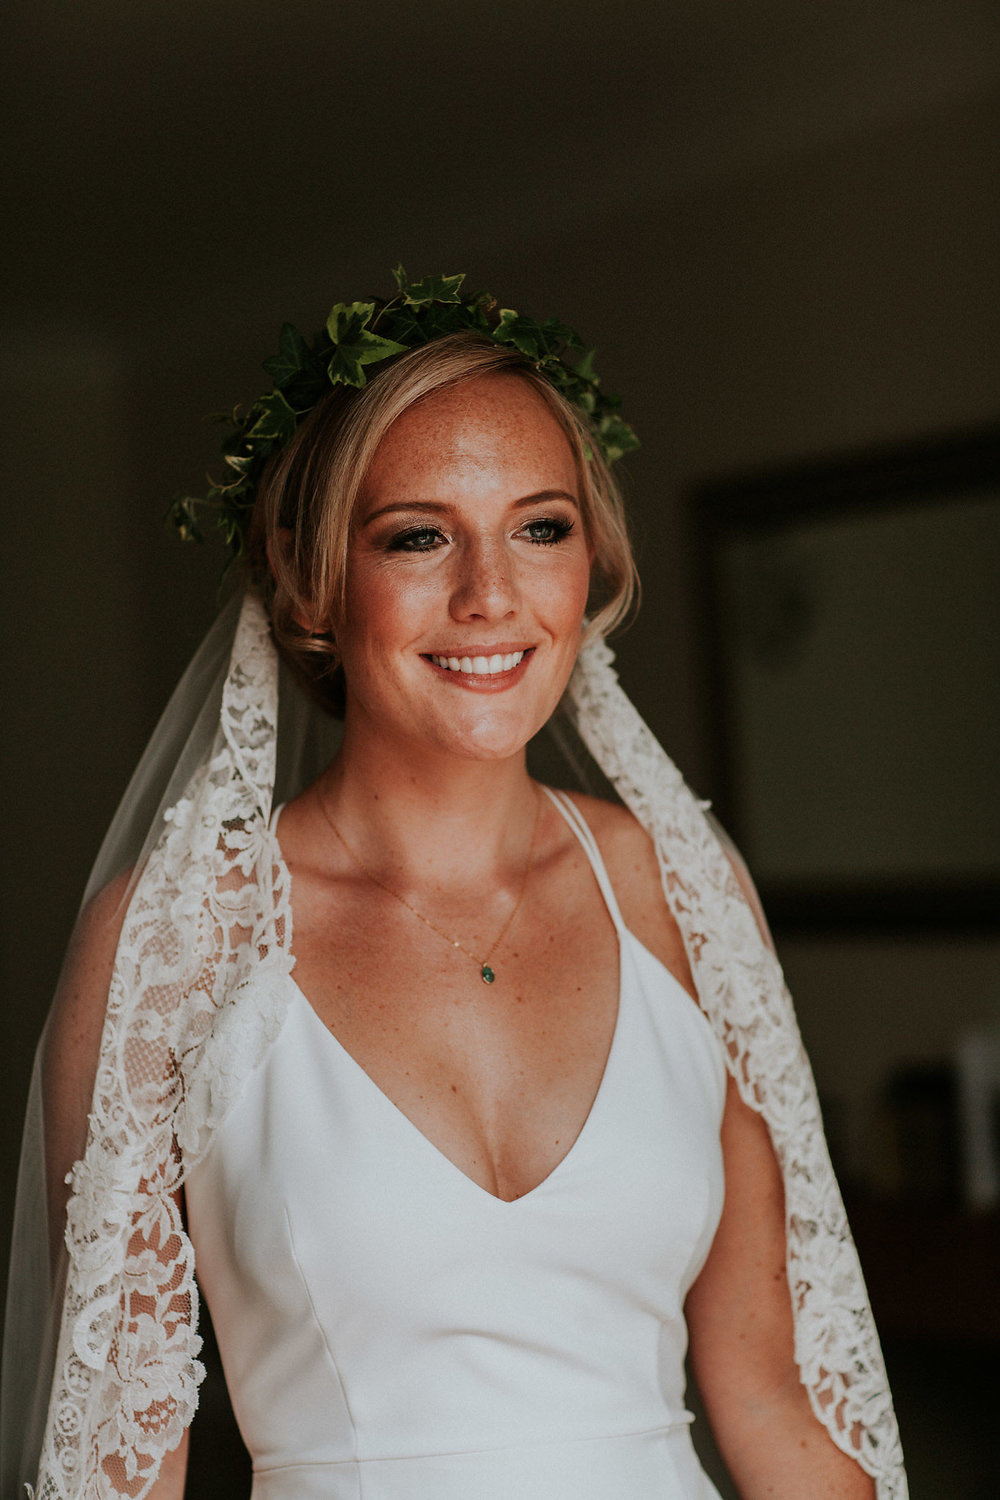 Bride Helen - Essex Wedding - Stunning bride Helen made my makeup job very easy. Beautiful freckles, sunkissed skin, cheekbones to be envied... I've complimented her skin tone with the fresh and glowing tones and textures but amped it up with the earthy-tones, smoky eyes.Photo: Abigail Fahey Photography